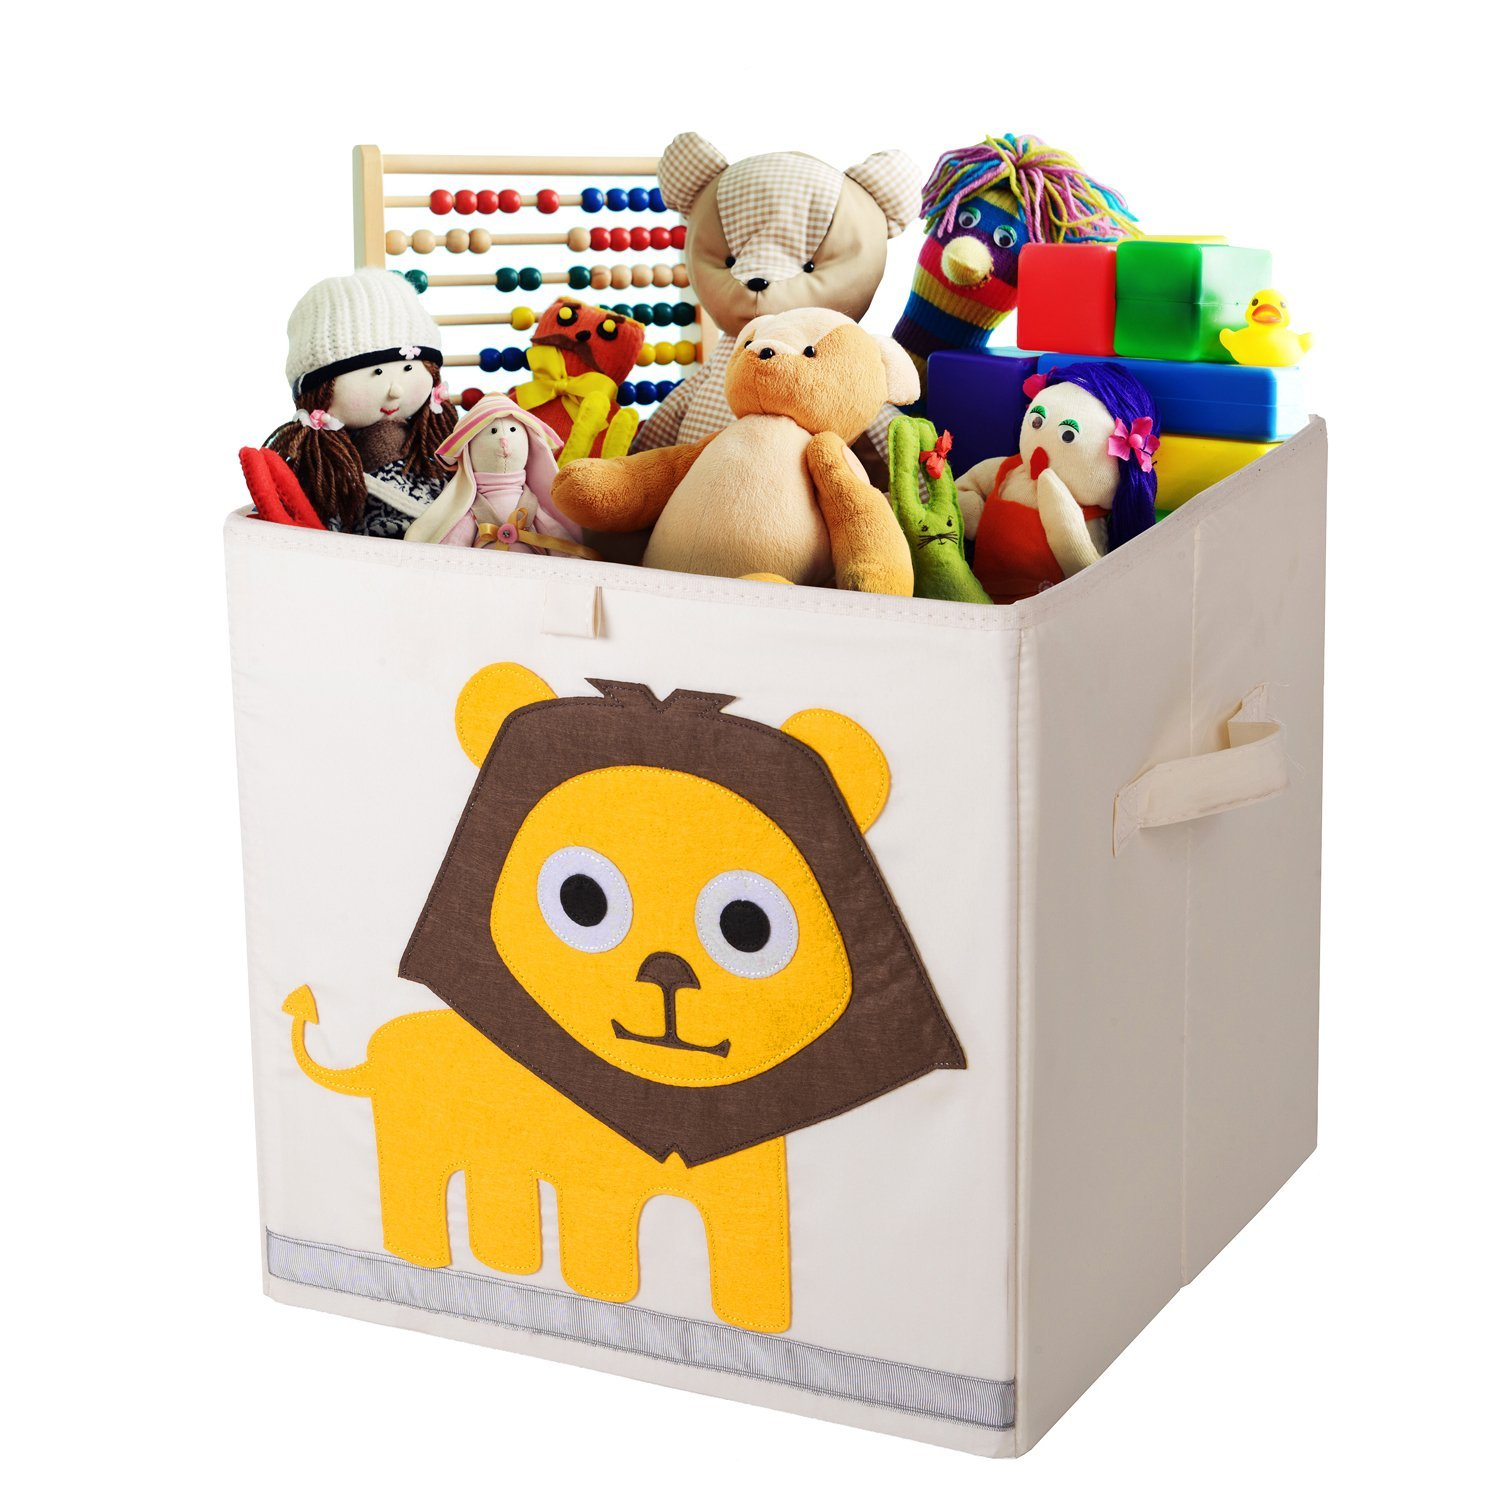 Storage Bins Foldable Cube Box - MURTOO - Eco Friendly Fabric Storage Cubes Origanizer for Kids Toys Cloth Fit IKEA Shelves, 13 inch (Lion)